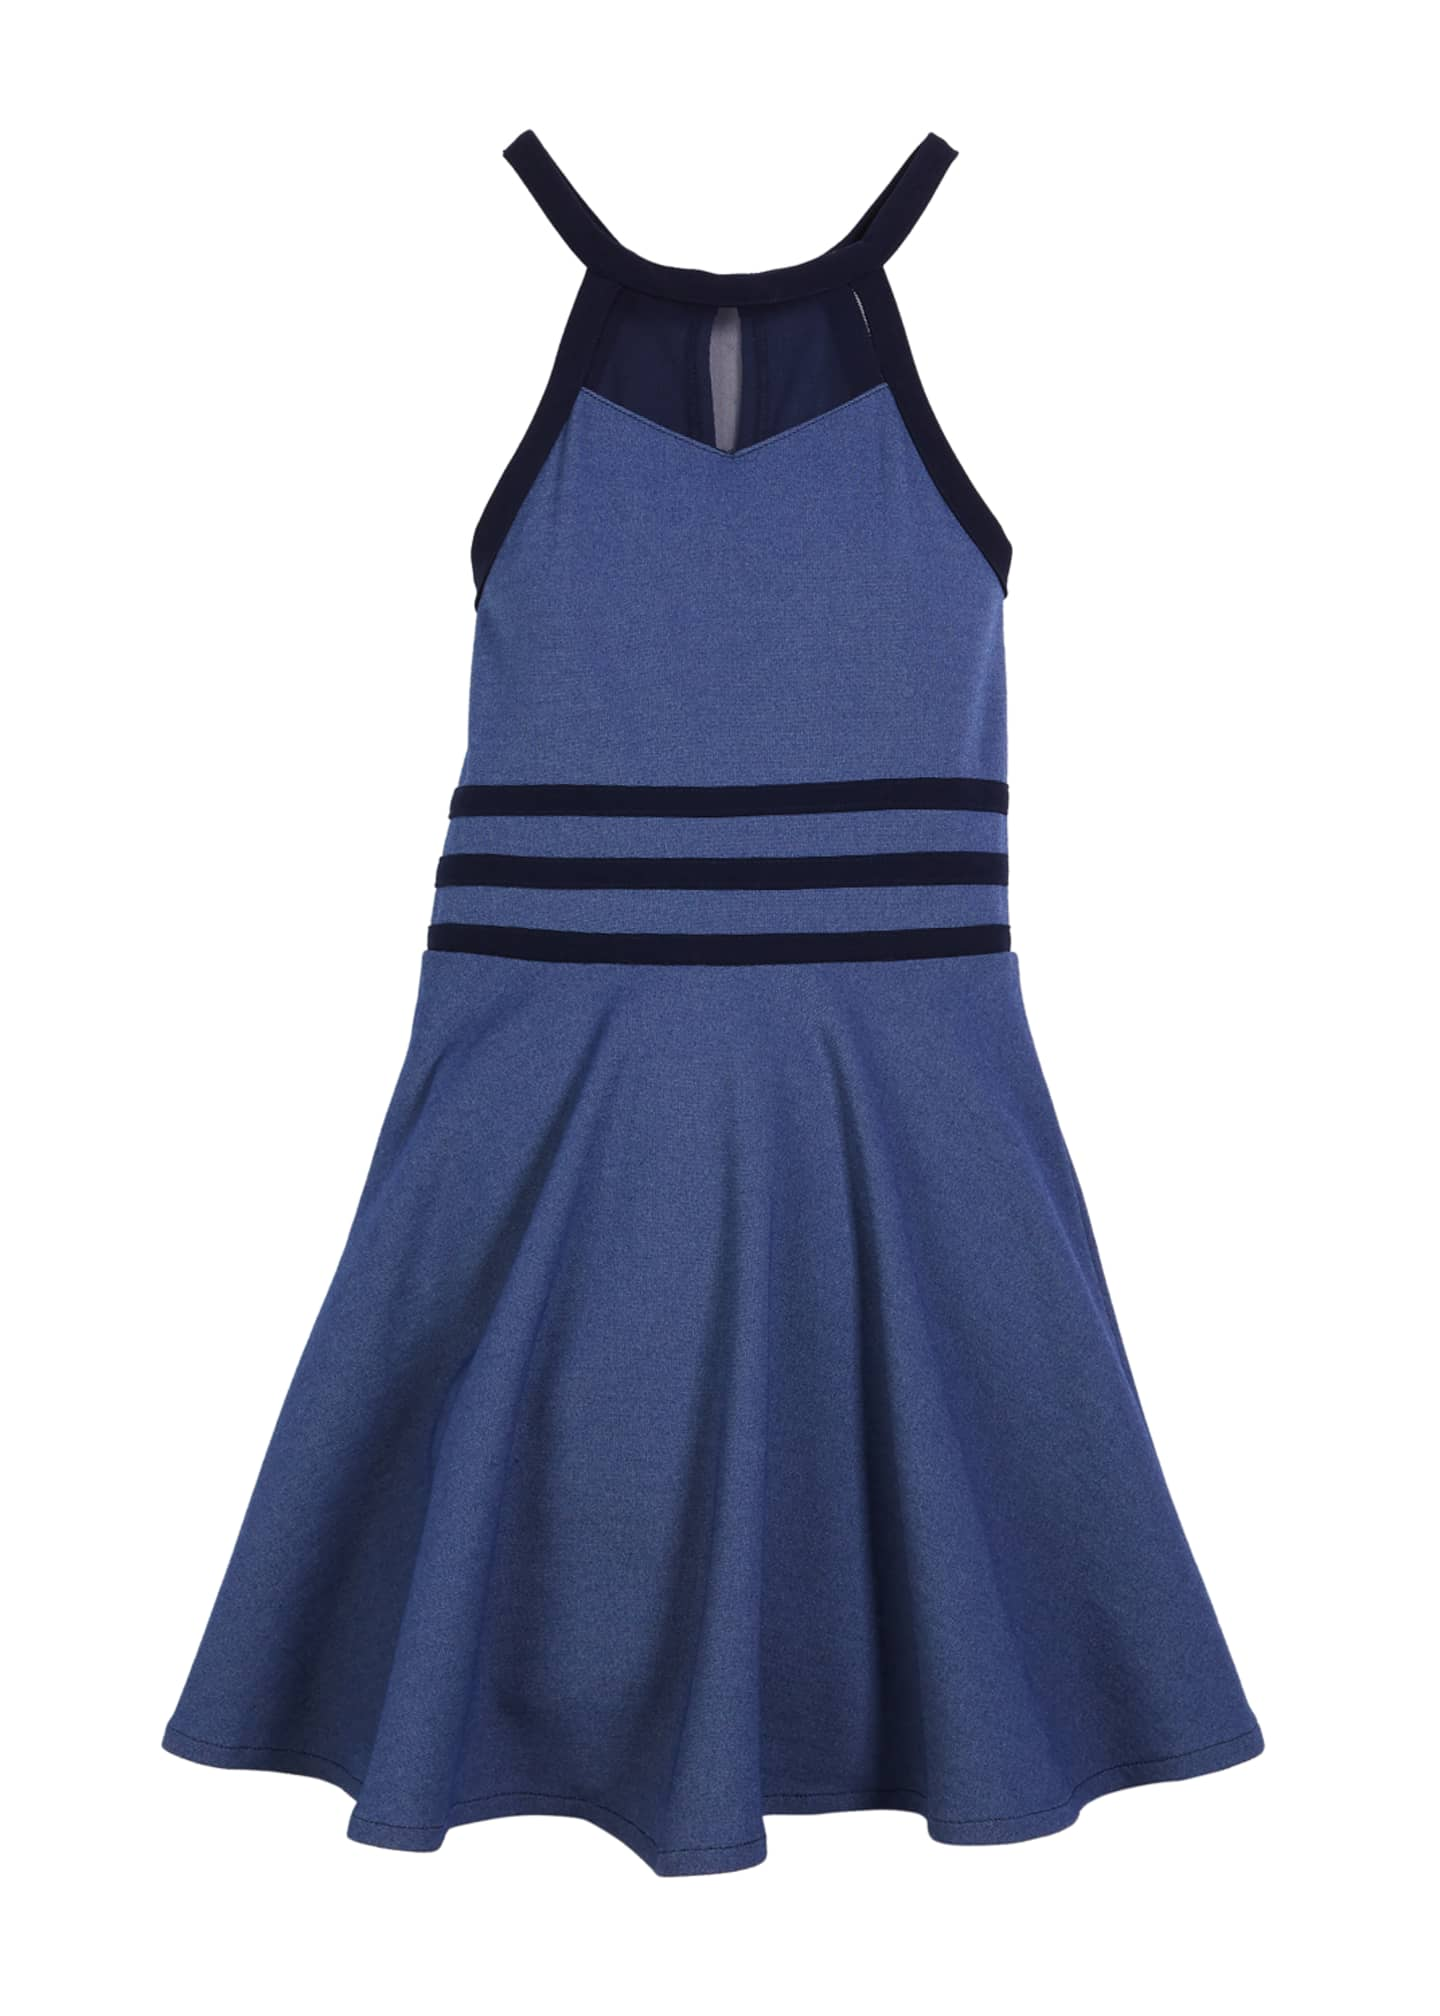 Sally Miller The Bella Halter Flare Dress, Size